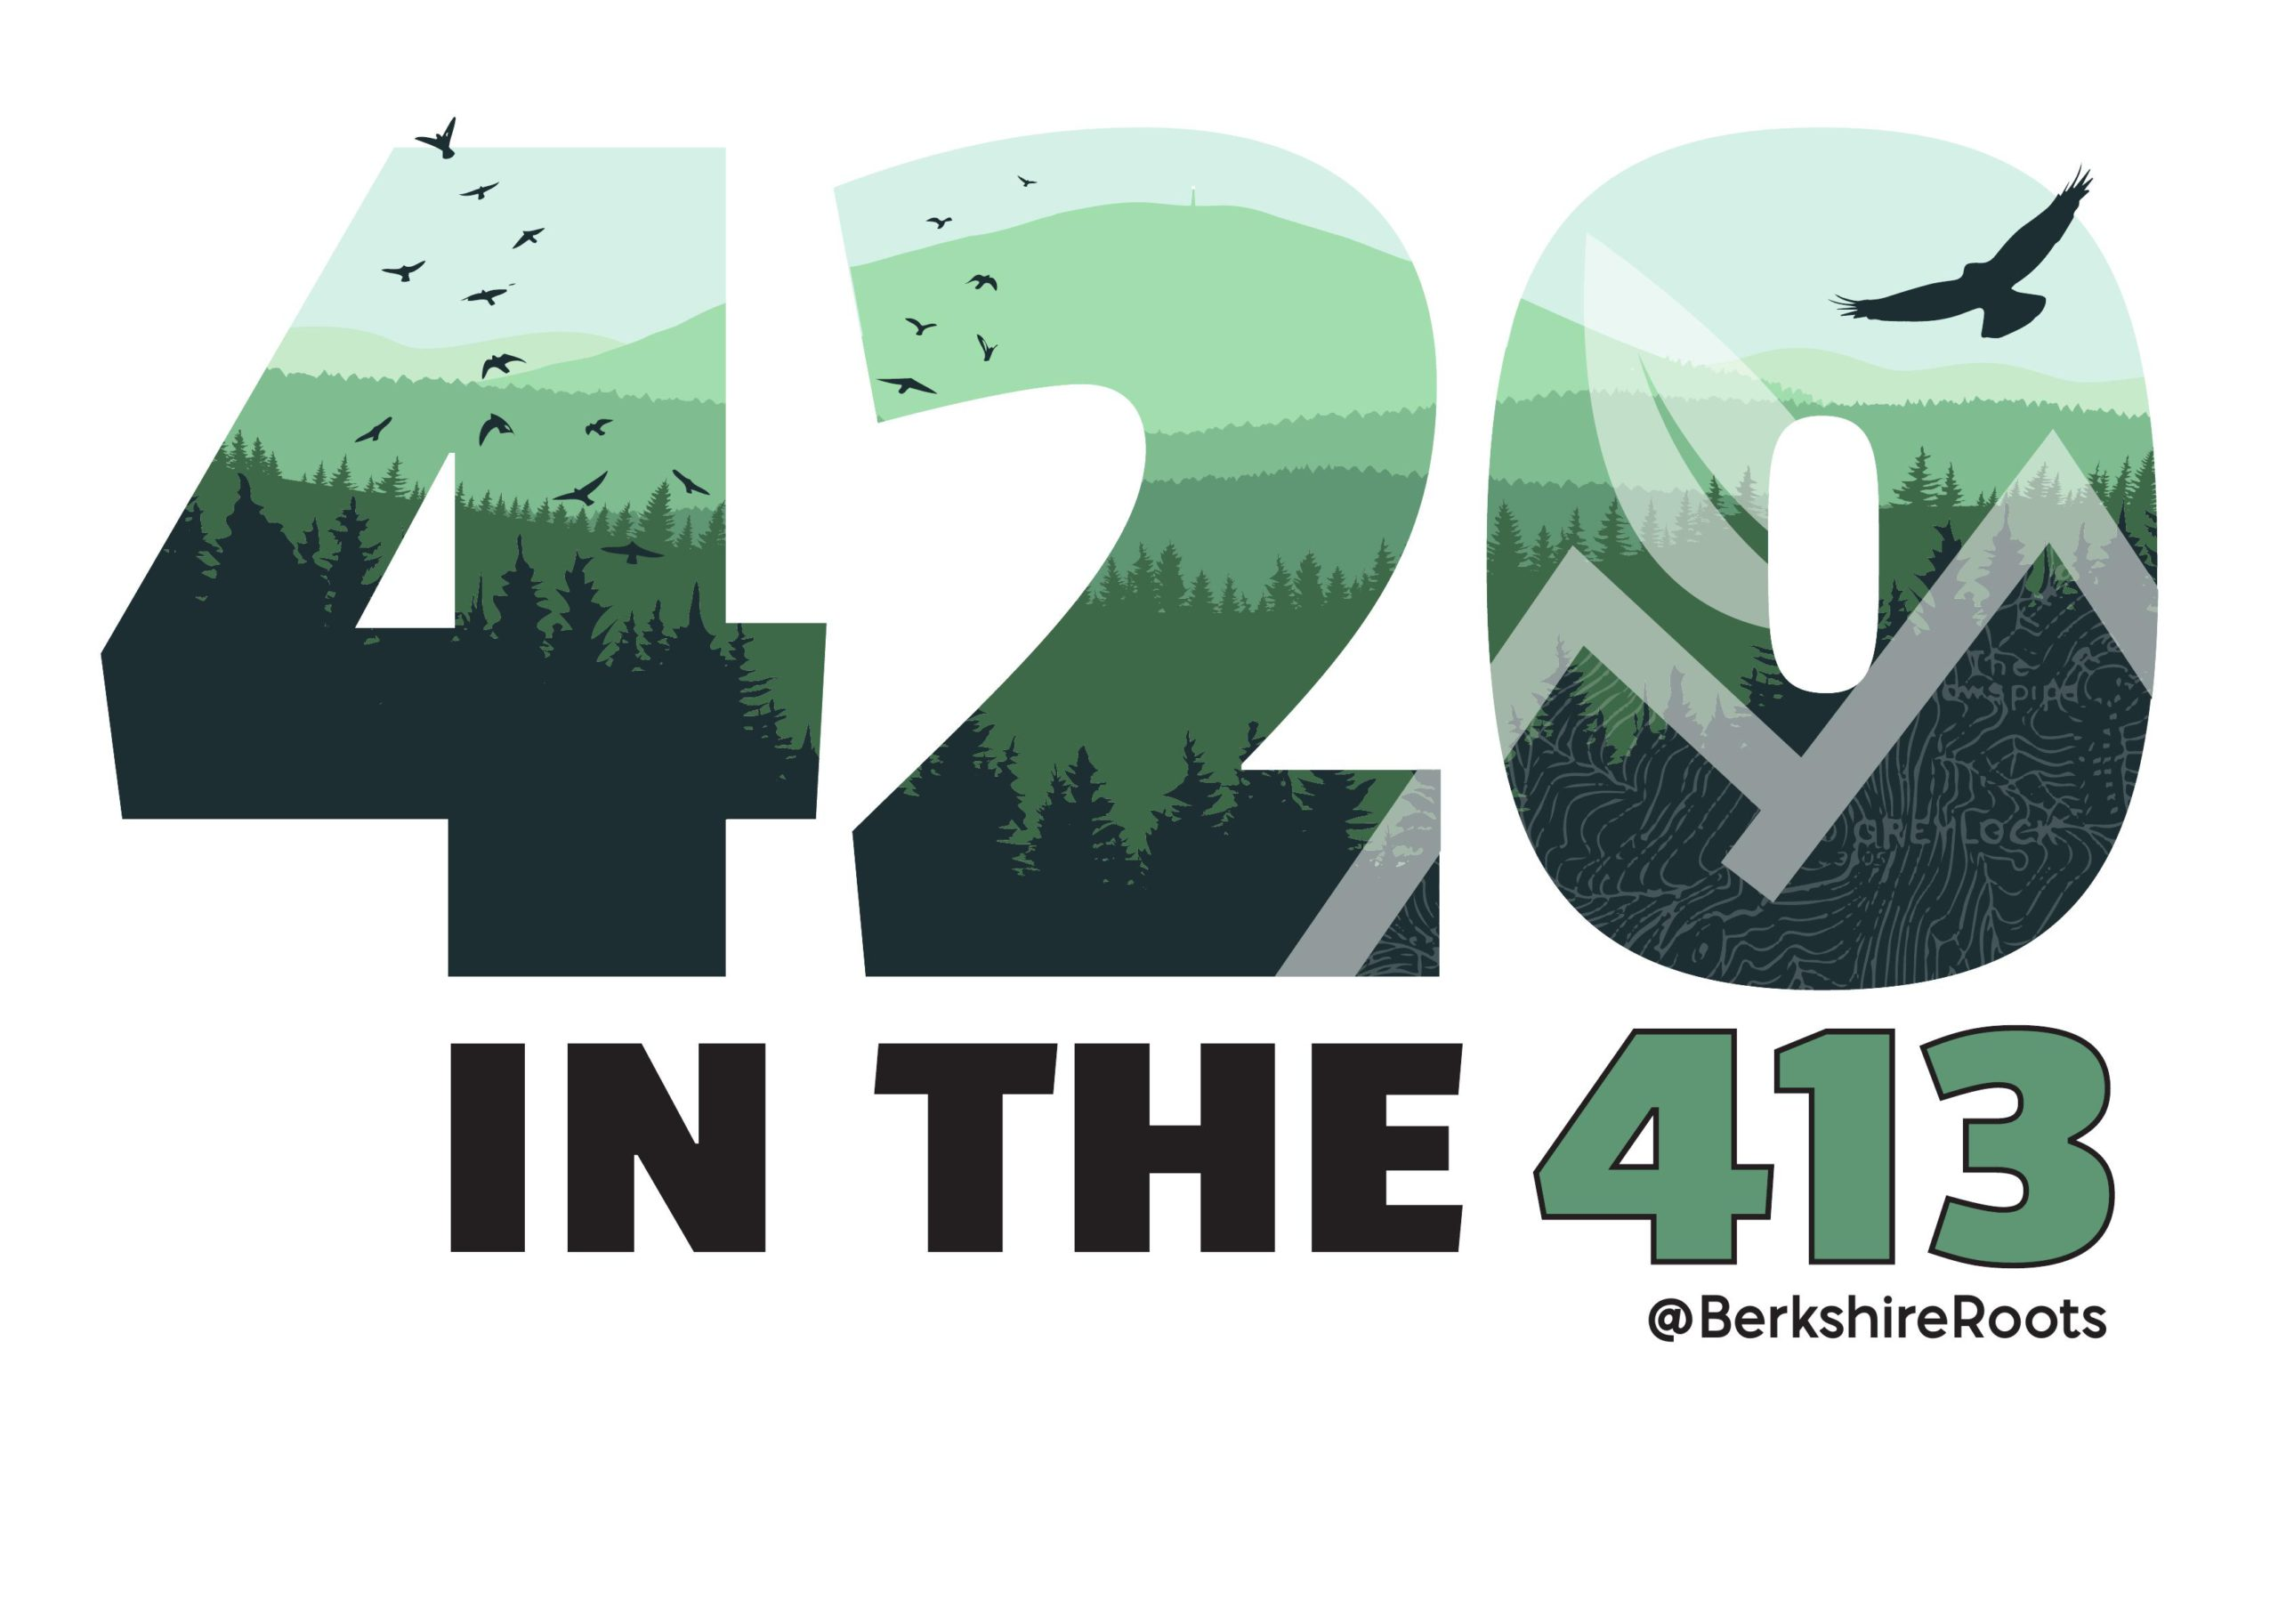 420 in the 413 design for Berkshire Roots